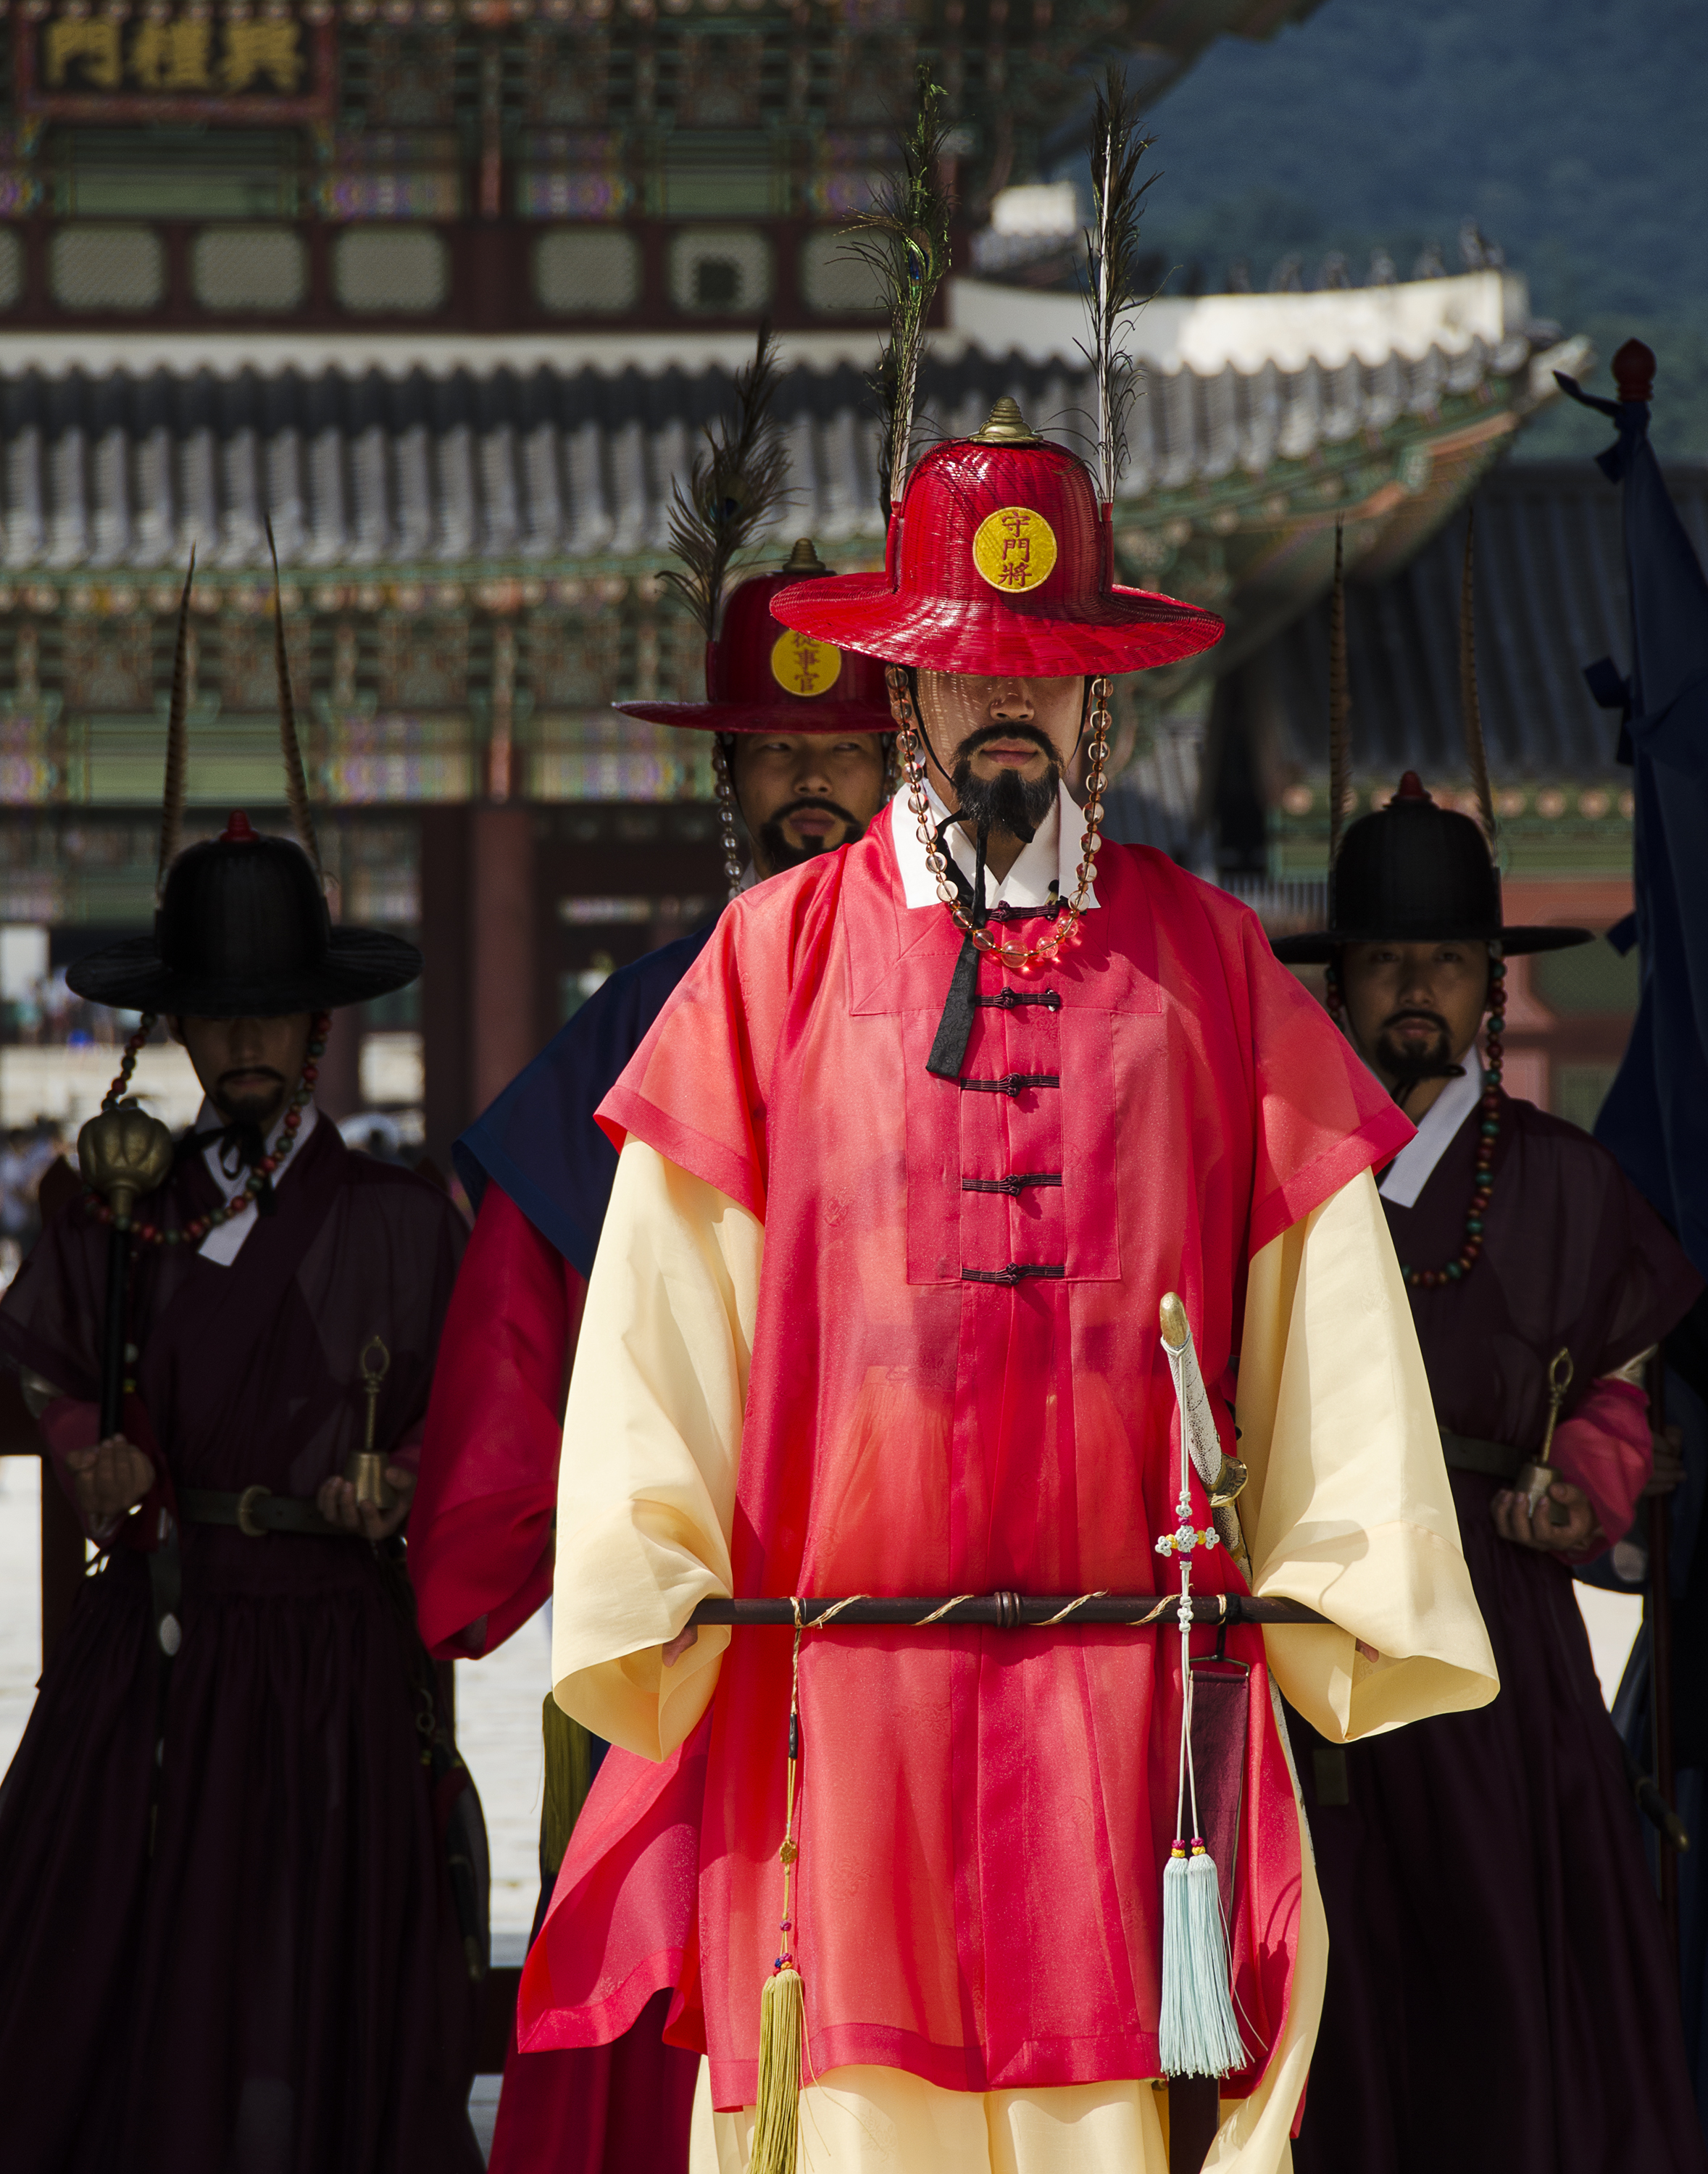 Spencer_Drake_Honour_Guard_Photography_Korea_Seoul_Gyeongbokgung_palace_guard_people_travel_traditional_clothing.jpg